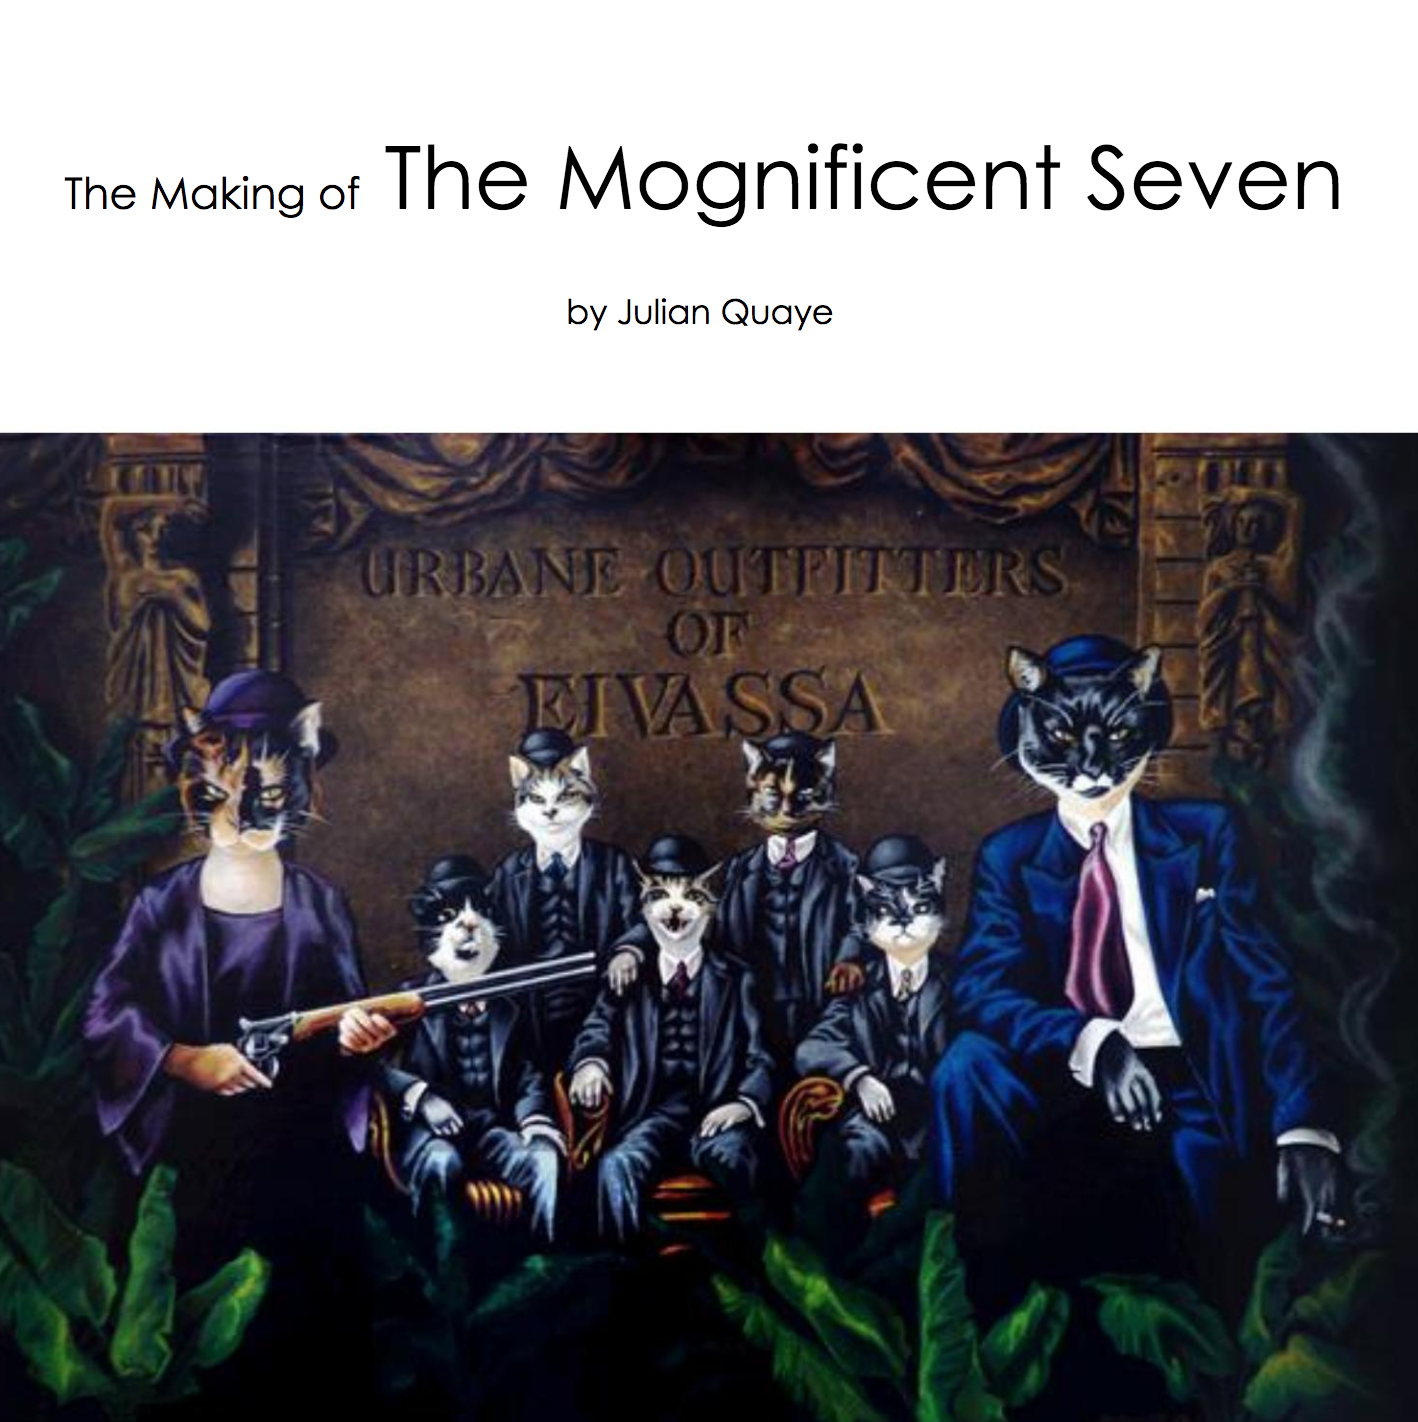 The making of the Mongificent Seven by Julian Quaye